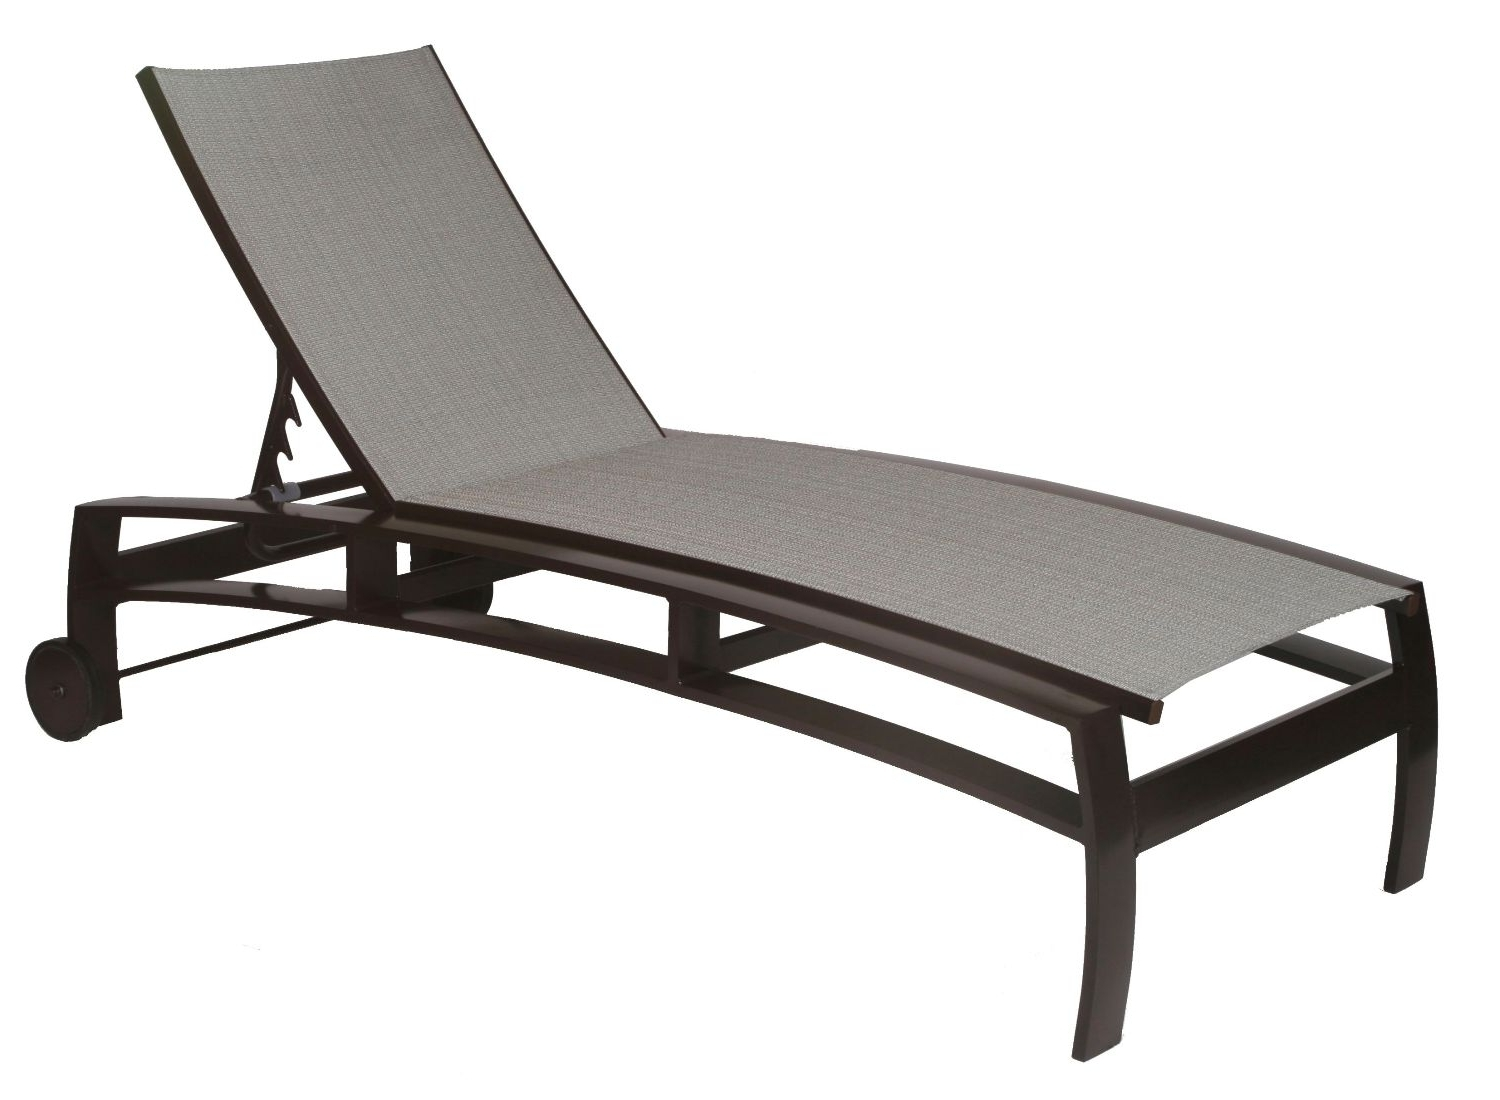 Most Current Aluminum Sling Chaise Lounge Sam S Club Throughout Chair Plans  3 Intended For Samu0027s